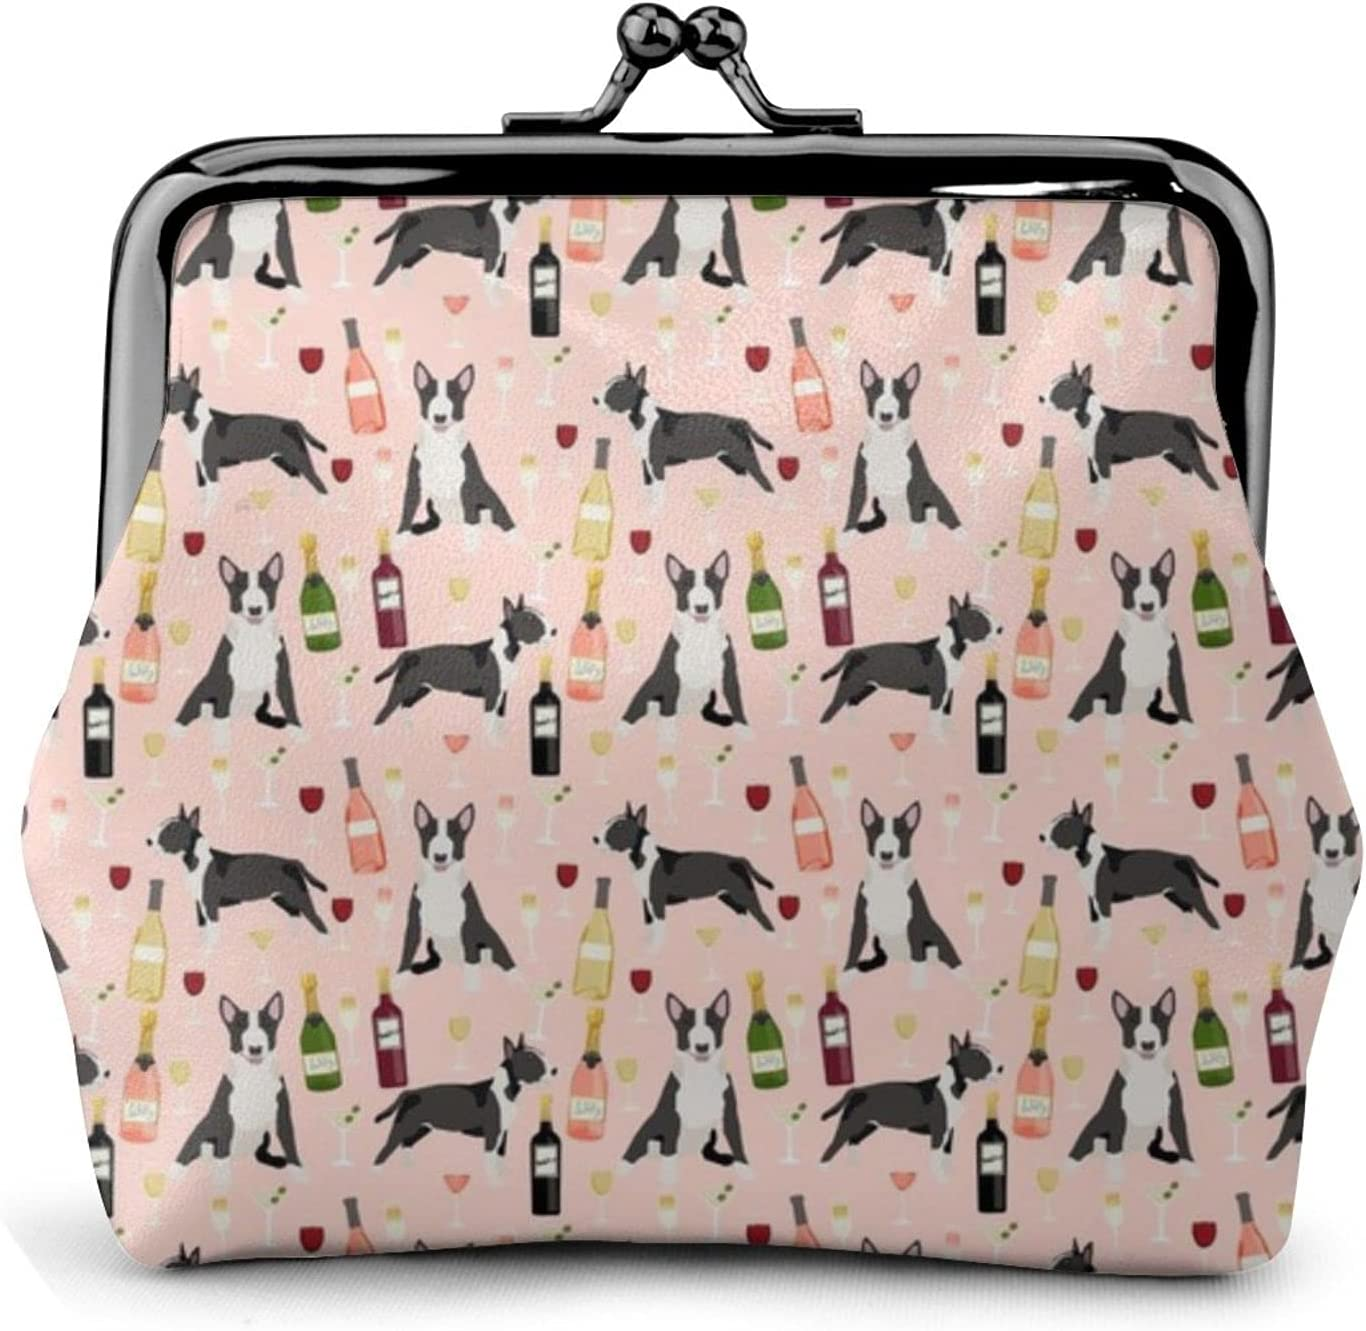 Bull Terrier Wine 1324 Coin Purse Retro Money Pouch with Kiss-lock Buckle Small Wallet for Women and Girls